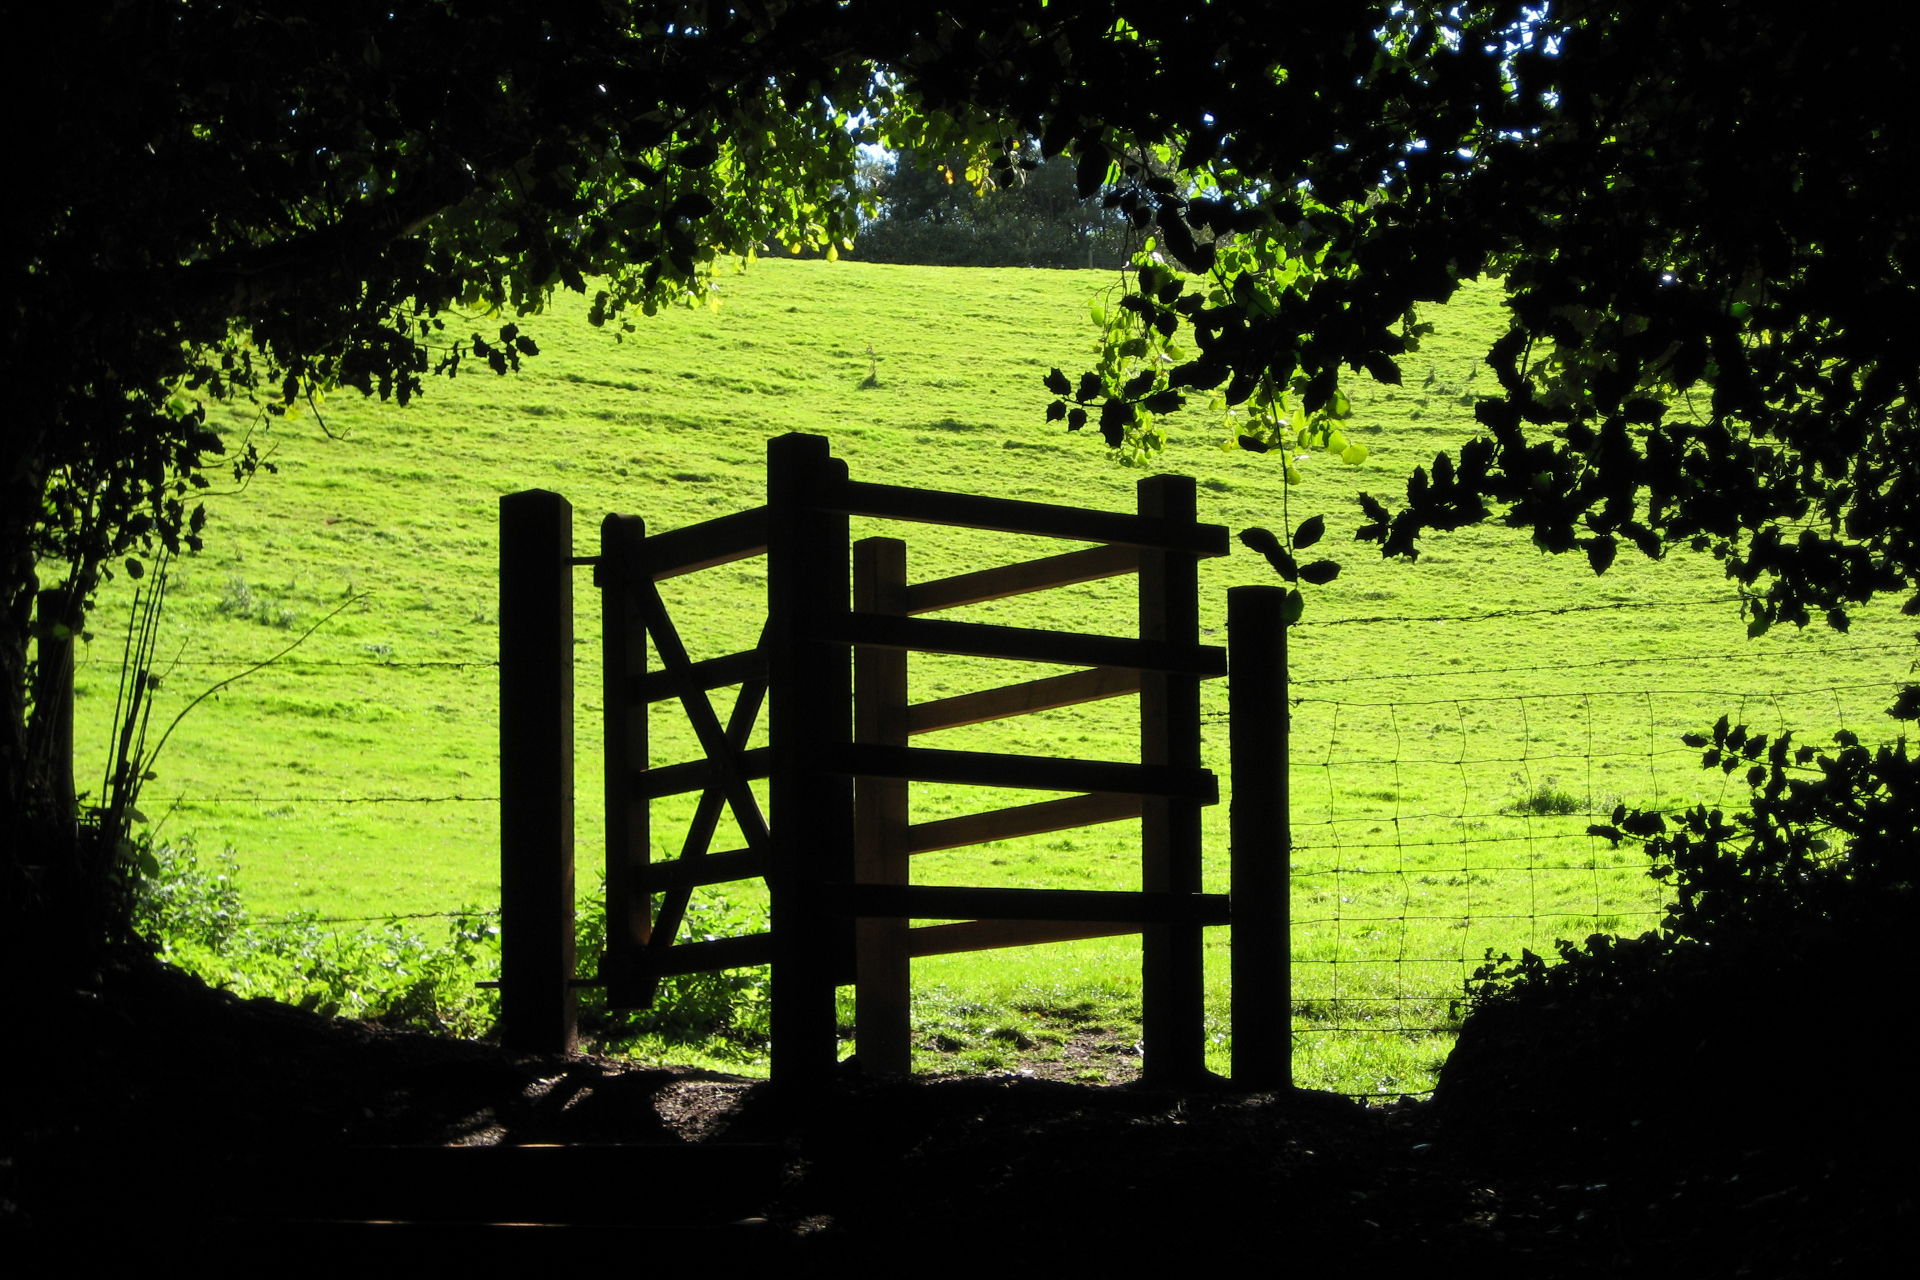 Kissing gate in Ludwell Valley Park